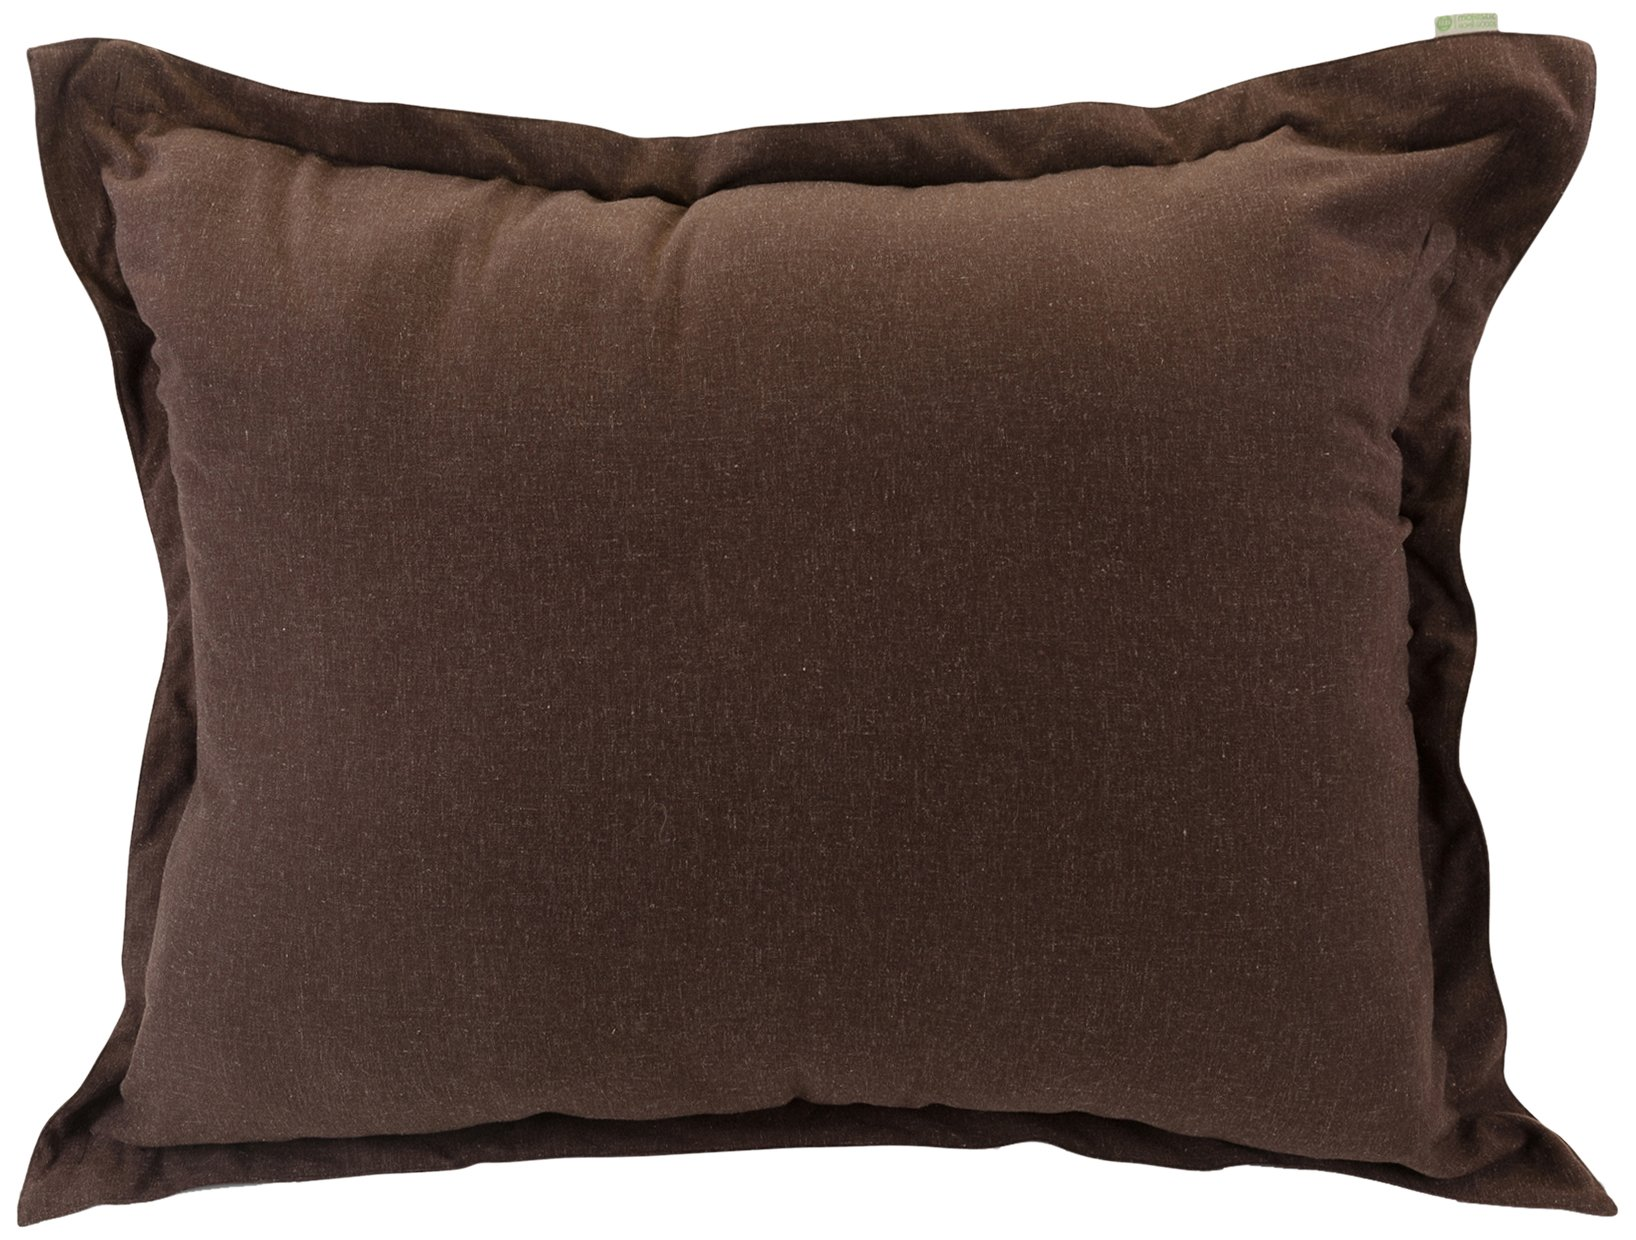 Majestic Home Goods Wales Floor Pillow, Chocolate by Majestic Home Goods